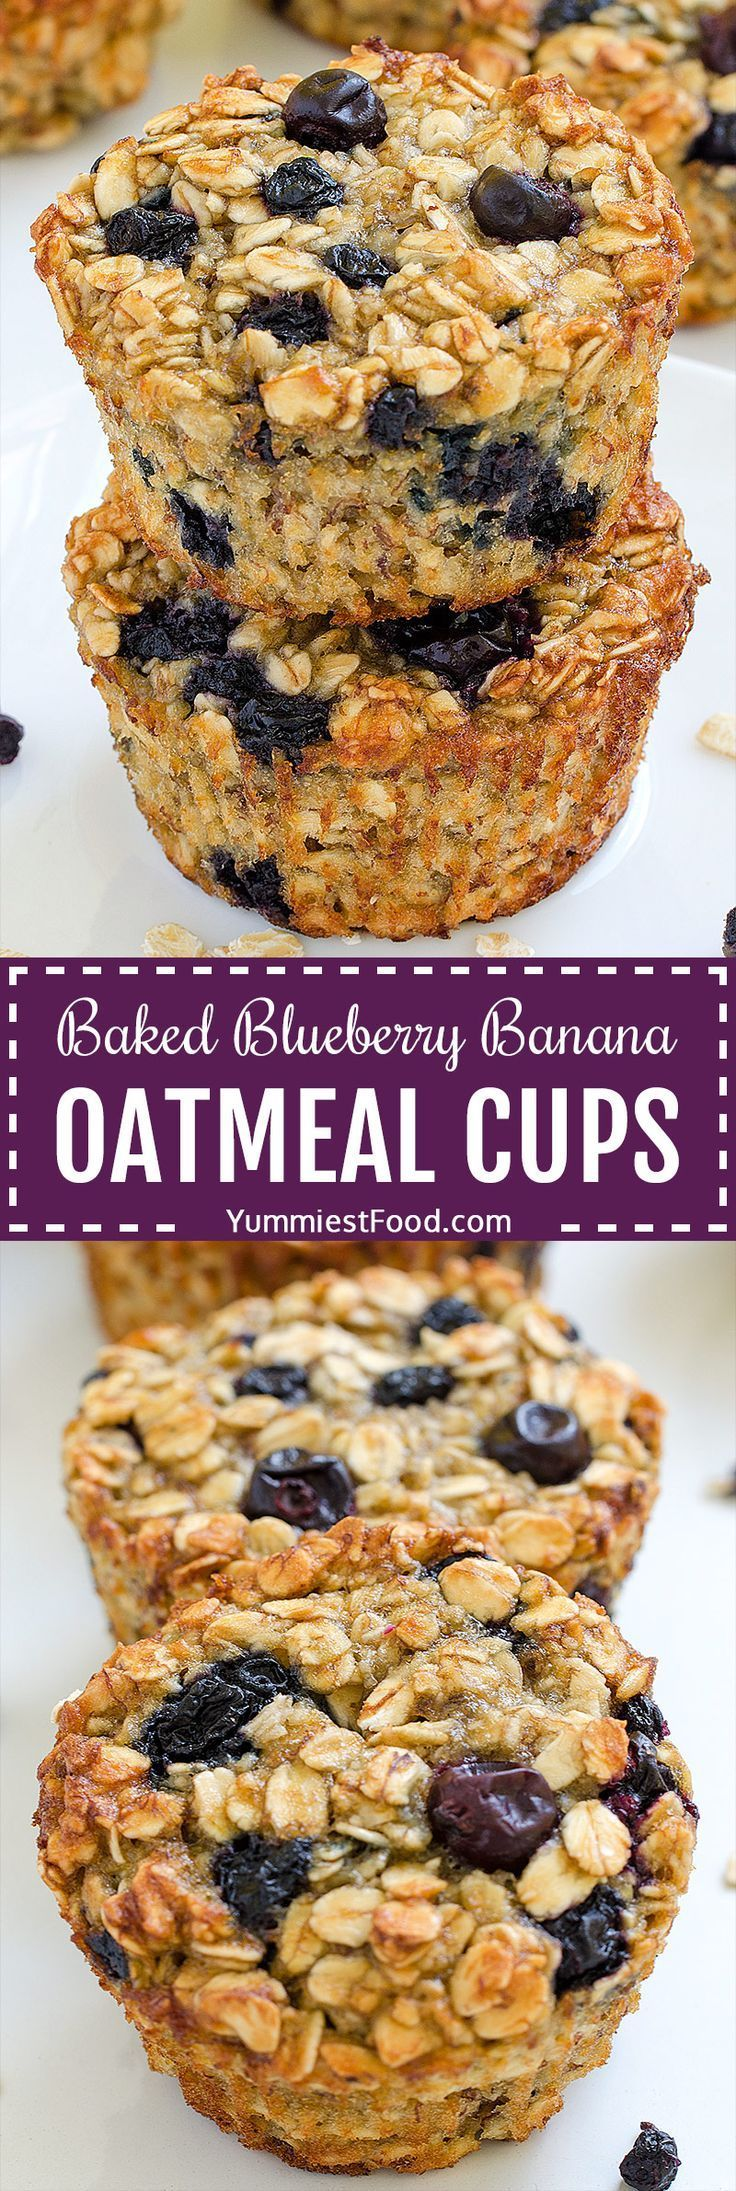 Baked Blueberry Banana Oatmeal Cups images